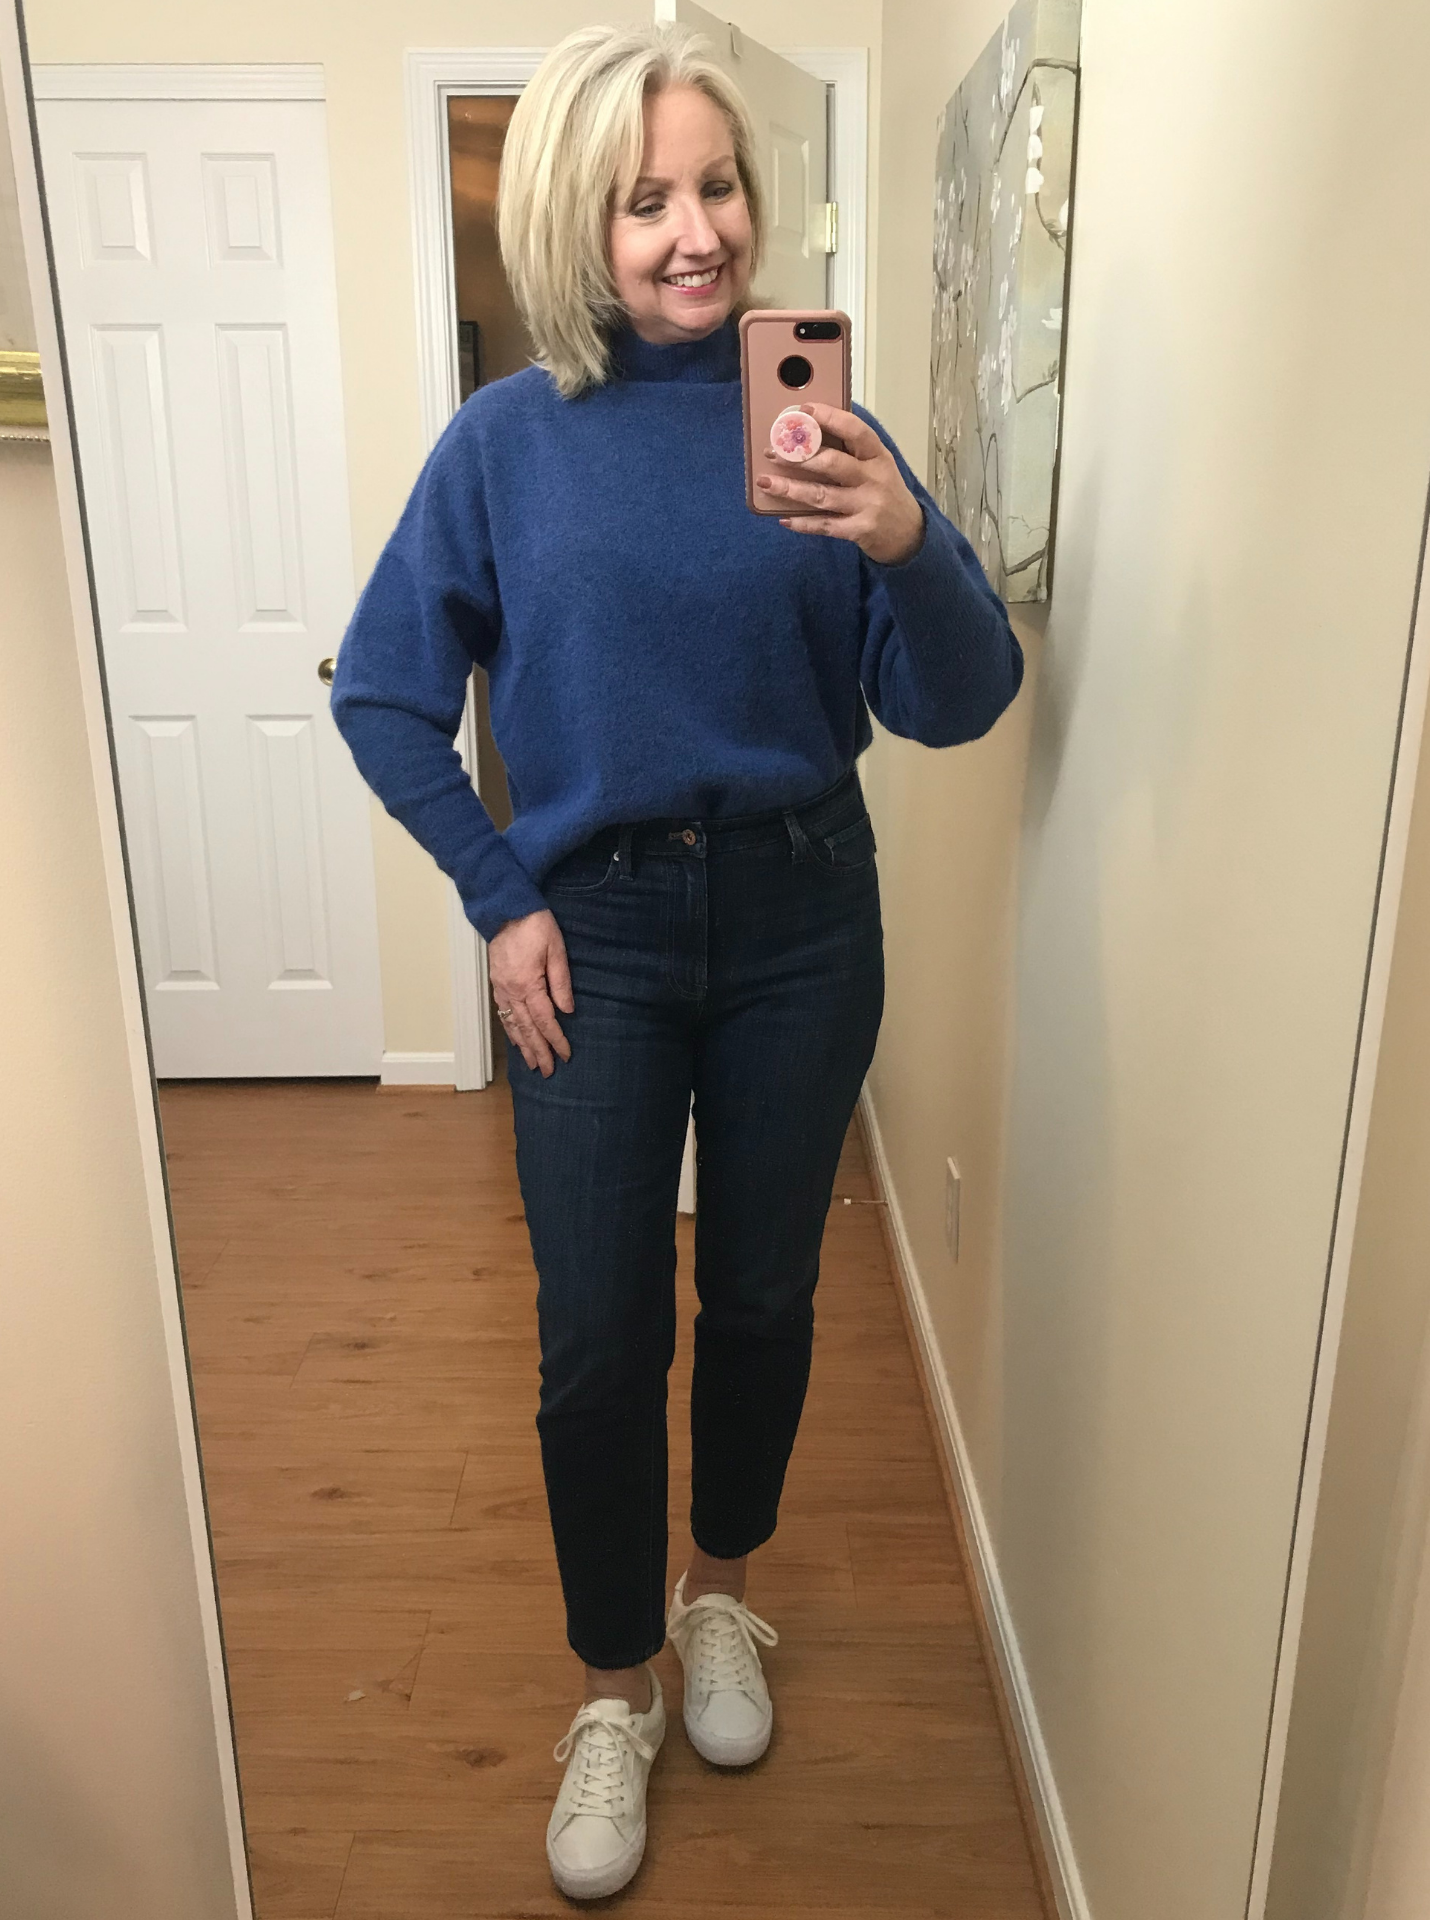 Ankle Jeans Cropped Blue Sweater Front Tuck White Sneakers